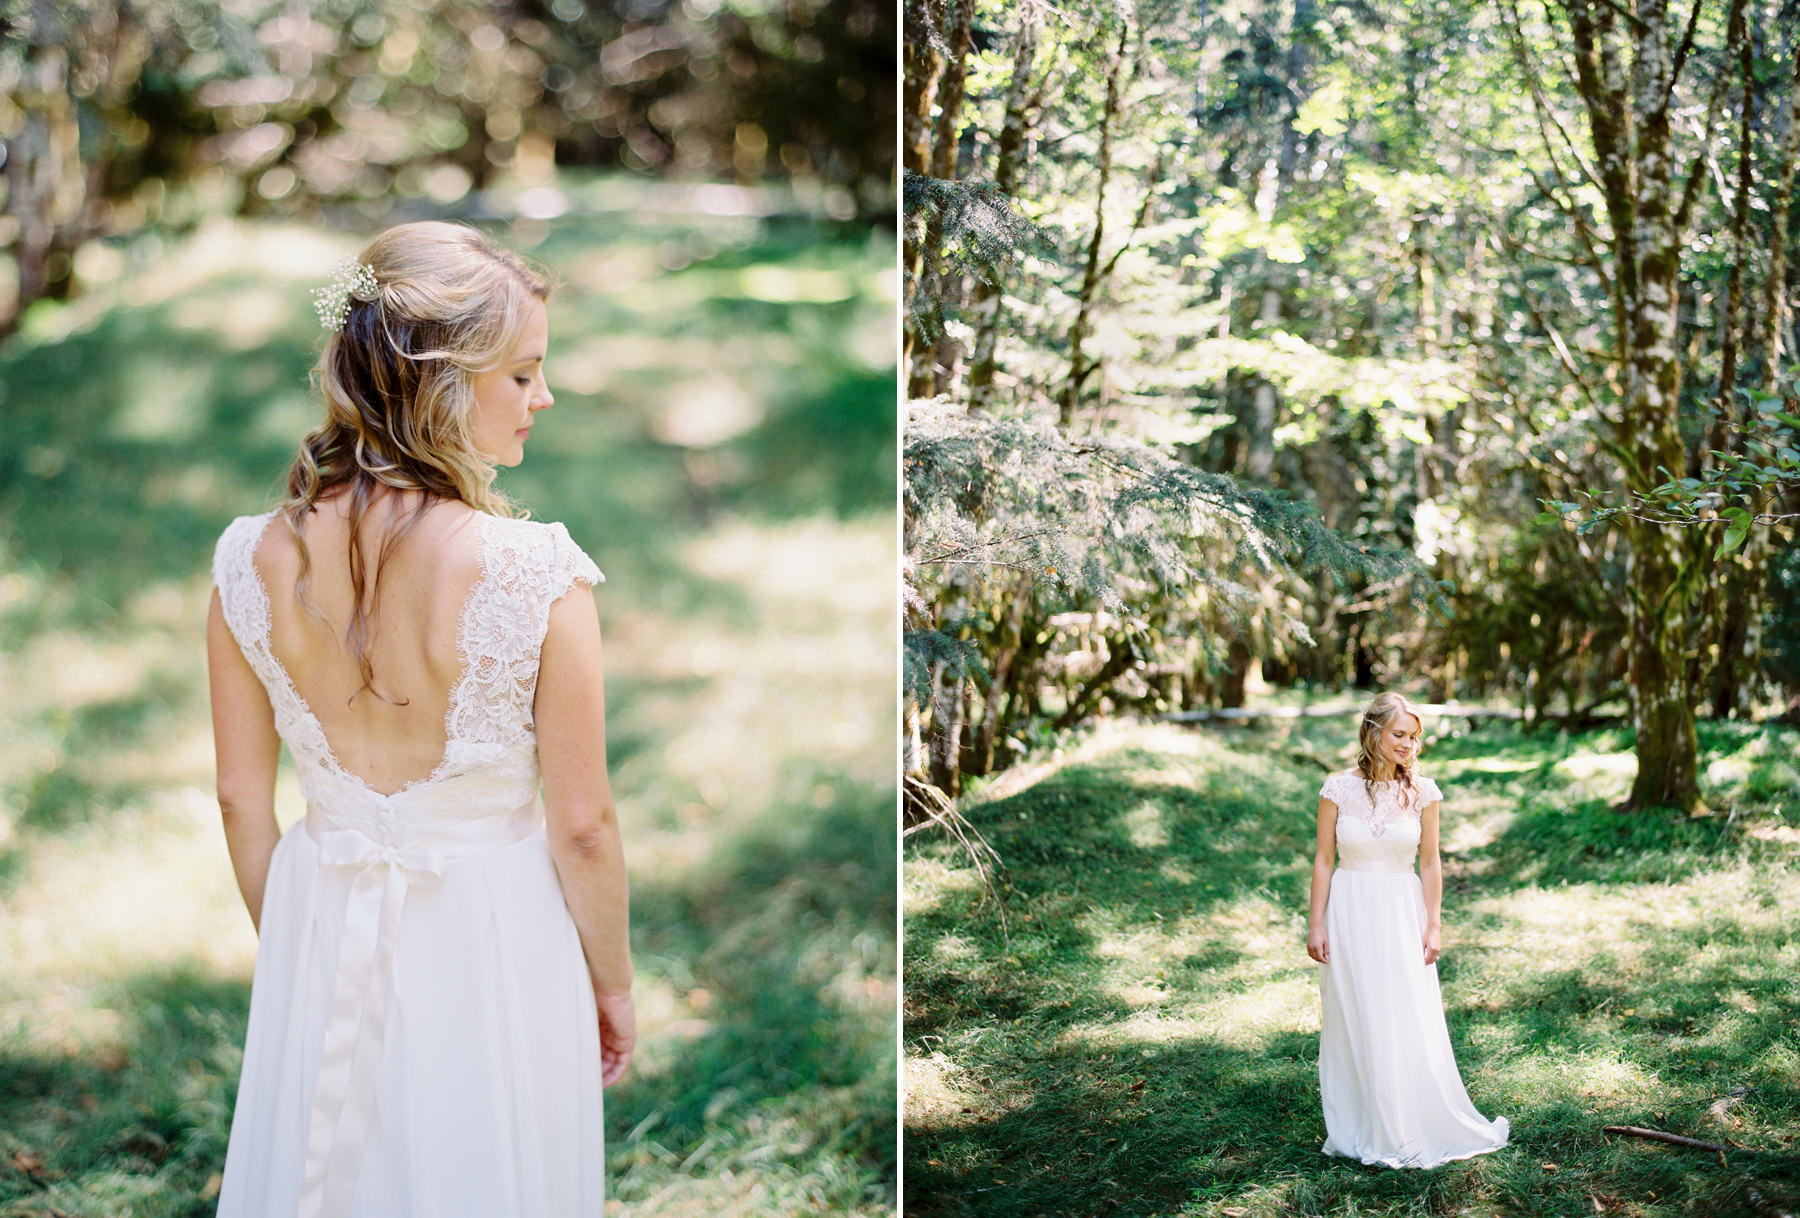 170-fine-art-film-wedding-portraits-at-nature-bride-near-the-lake-crescent-lodge.jpg